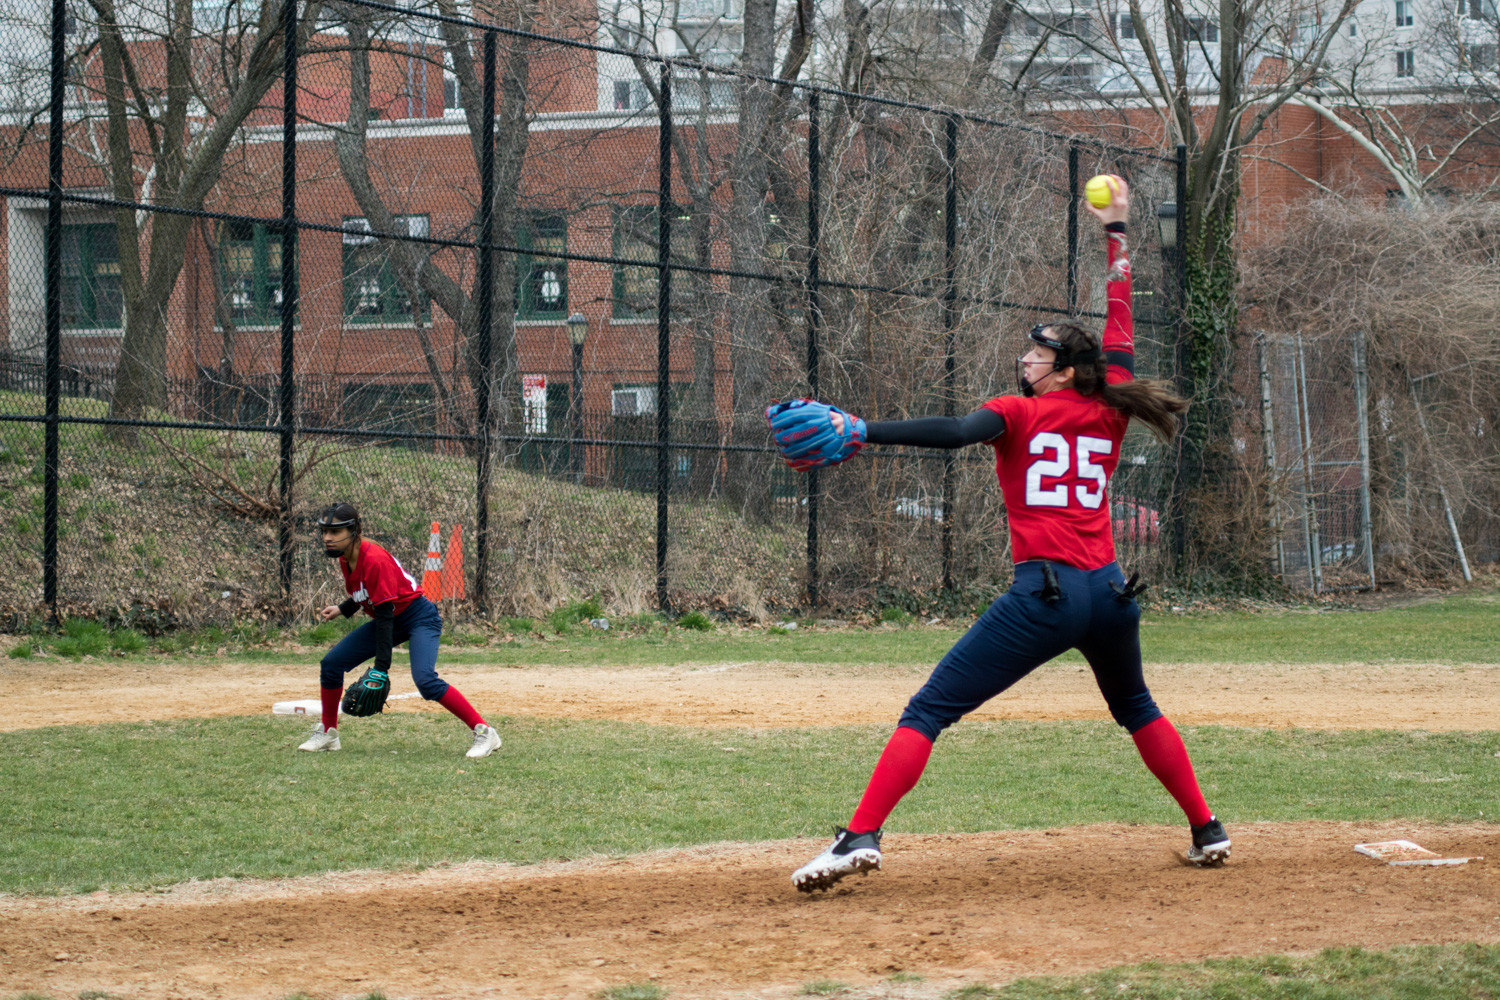 JFK senior pitcher Stacy Hernandez was her usual dominant self as she struck out 10 Explorations Academy hitters in just four innings of work on March 28.